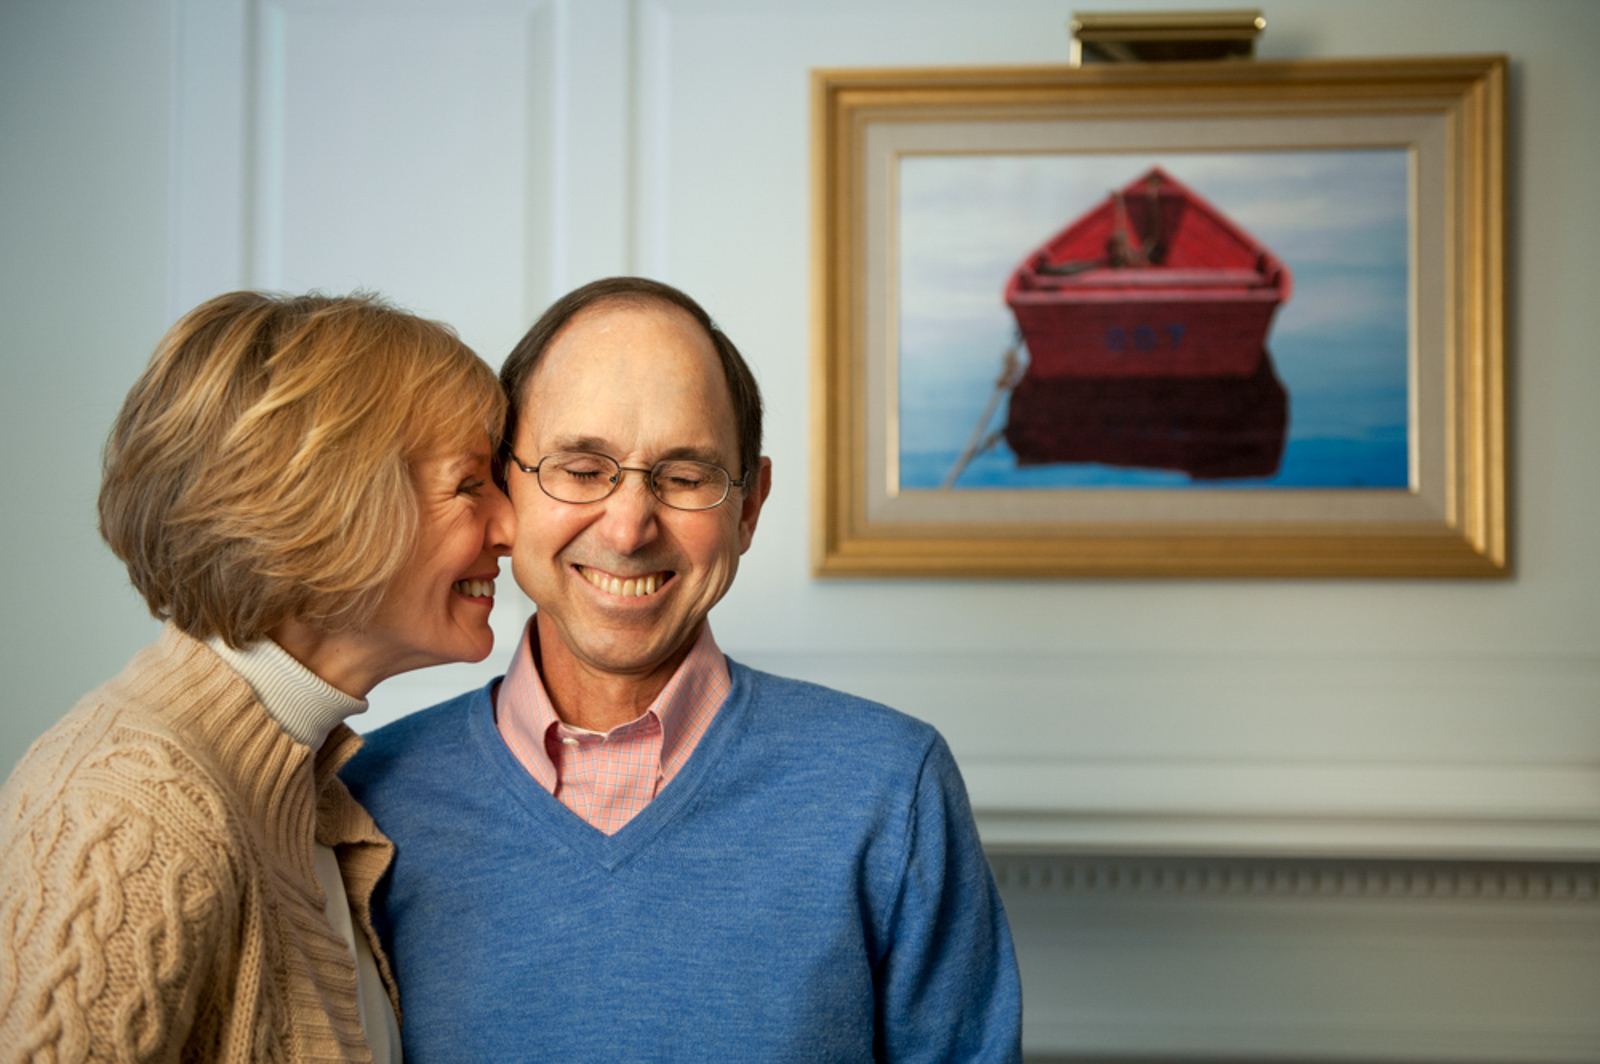 Portrait of smiling couple in a loving moment, with painting